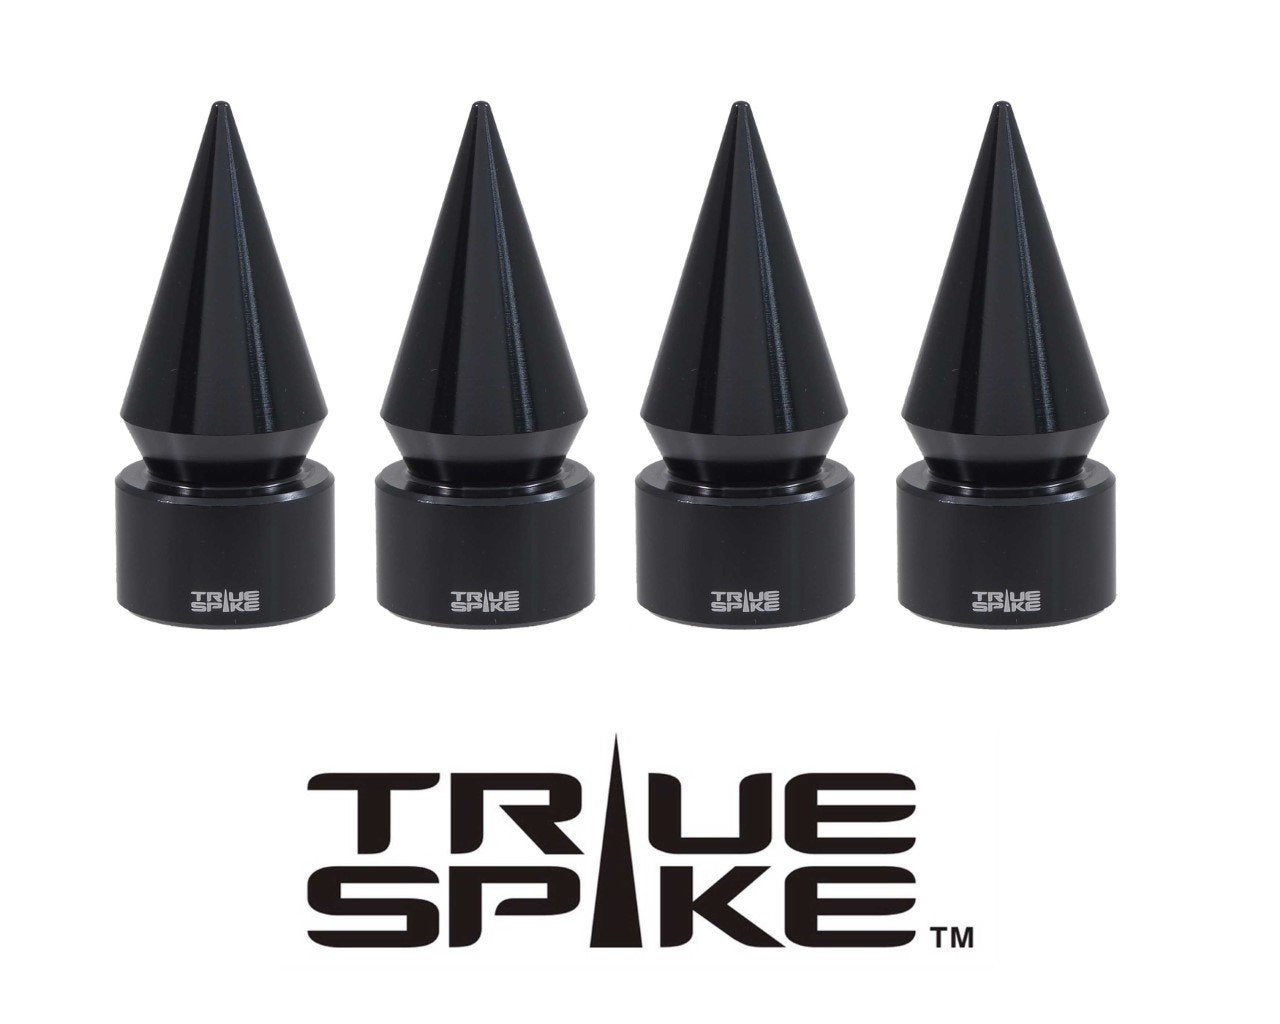 TRUE SPIKE Aluminum Spike Valve Stem Caps (4pc Kit) WVC003